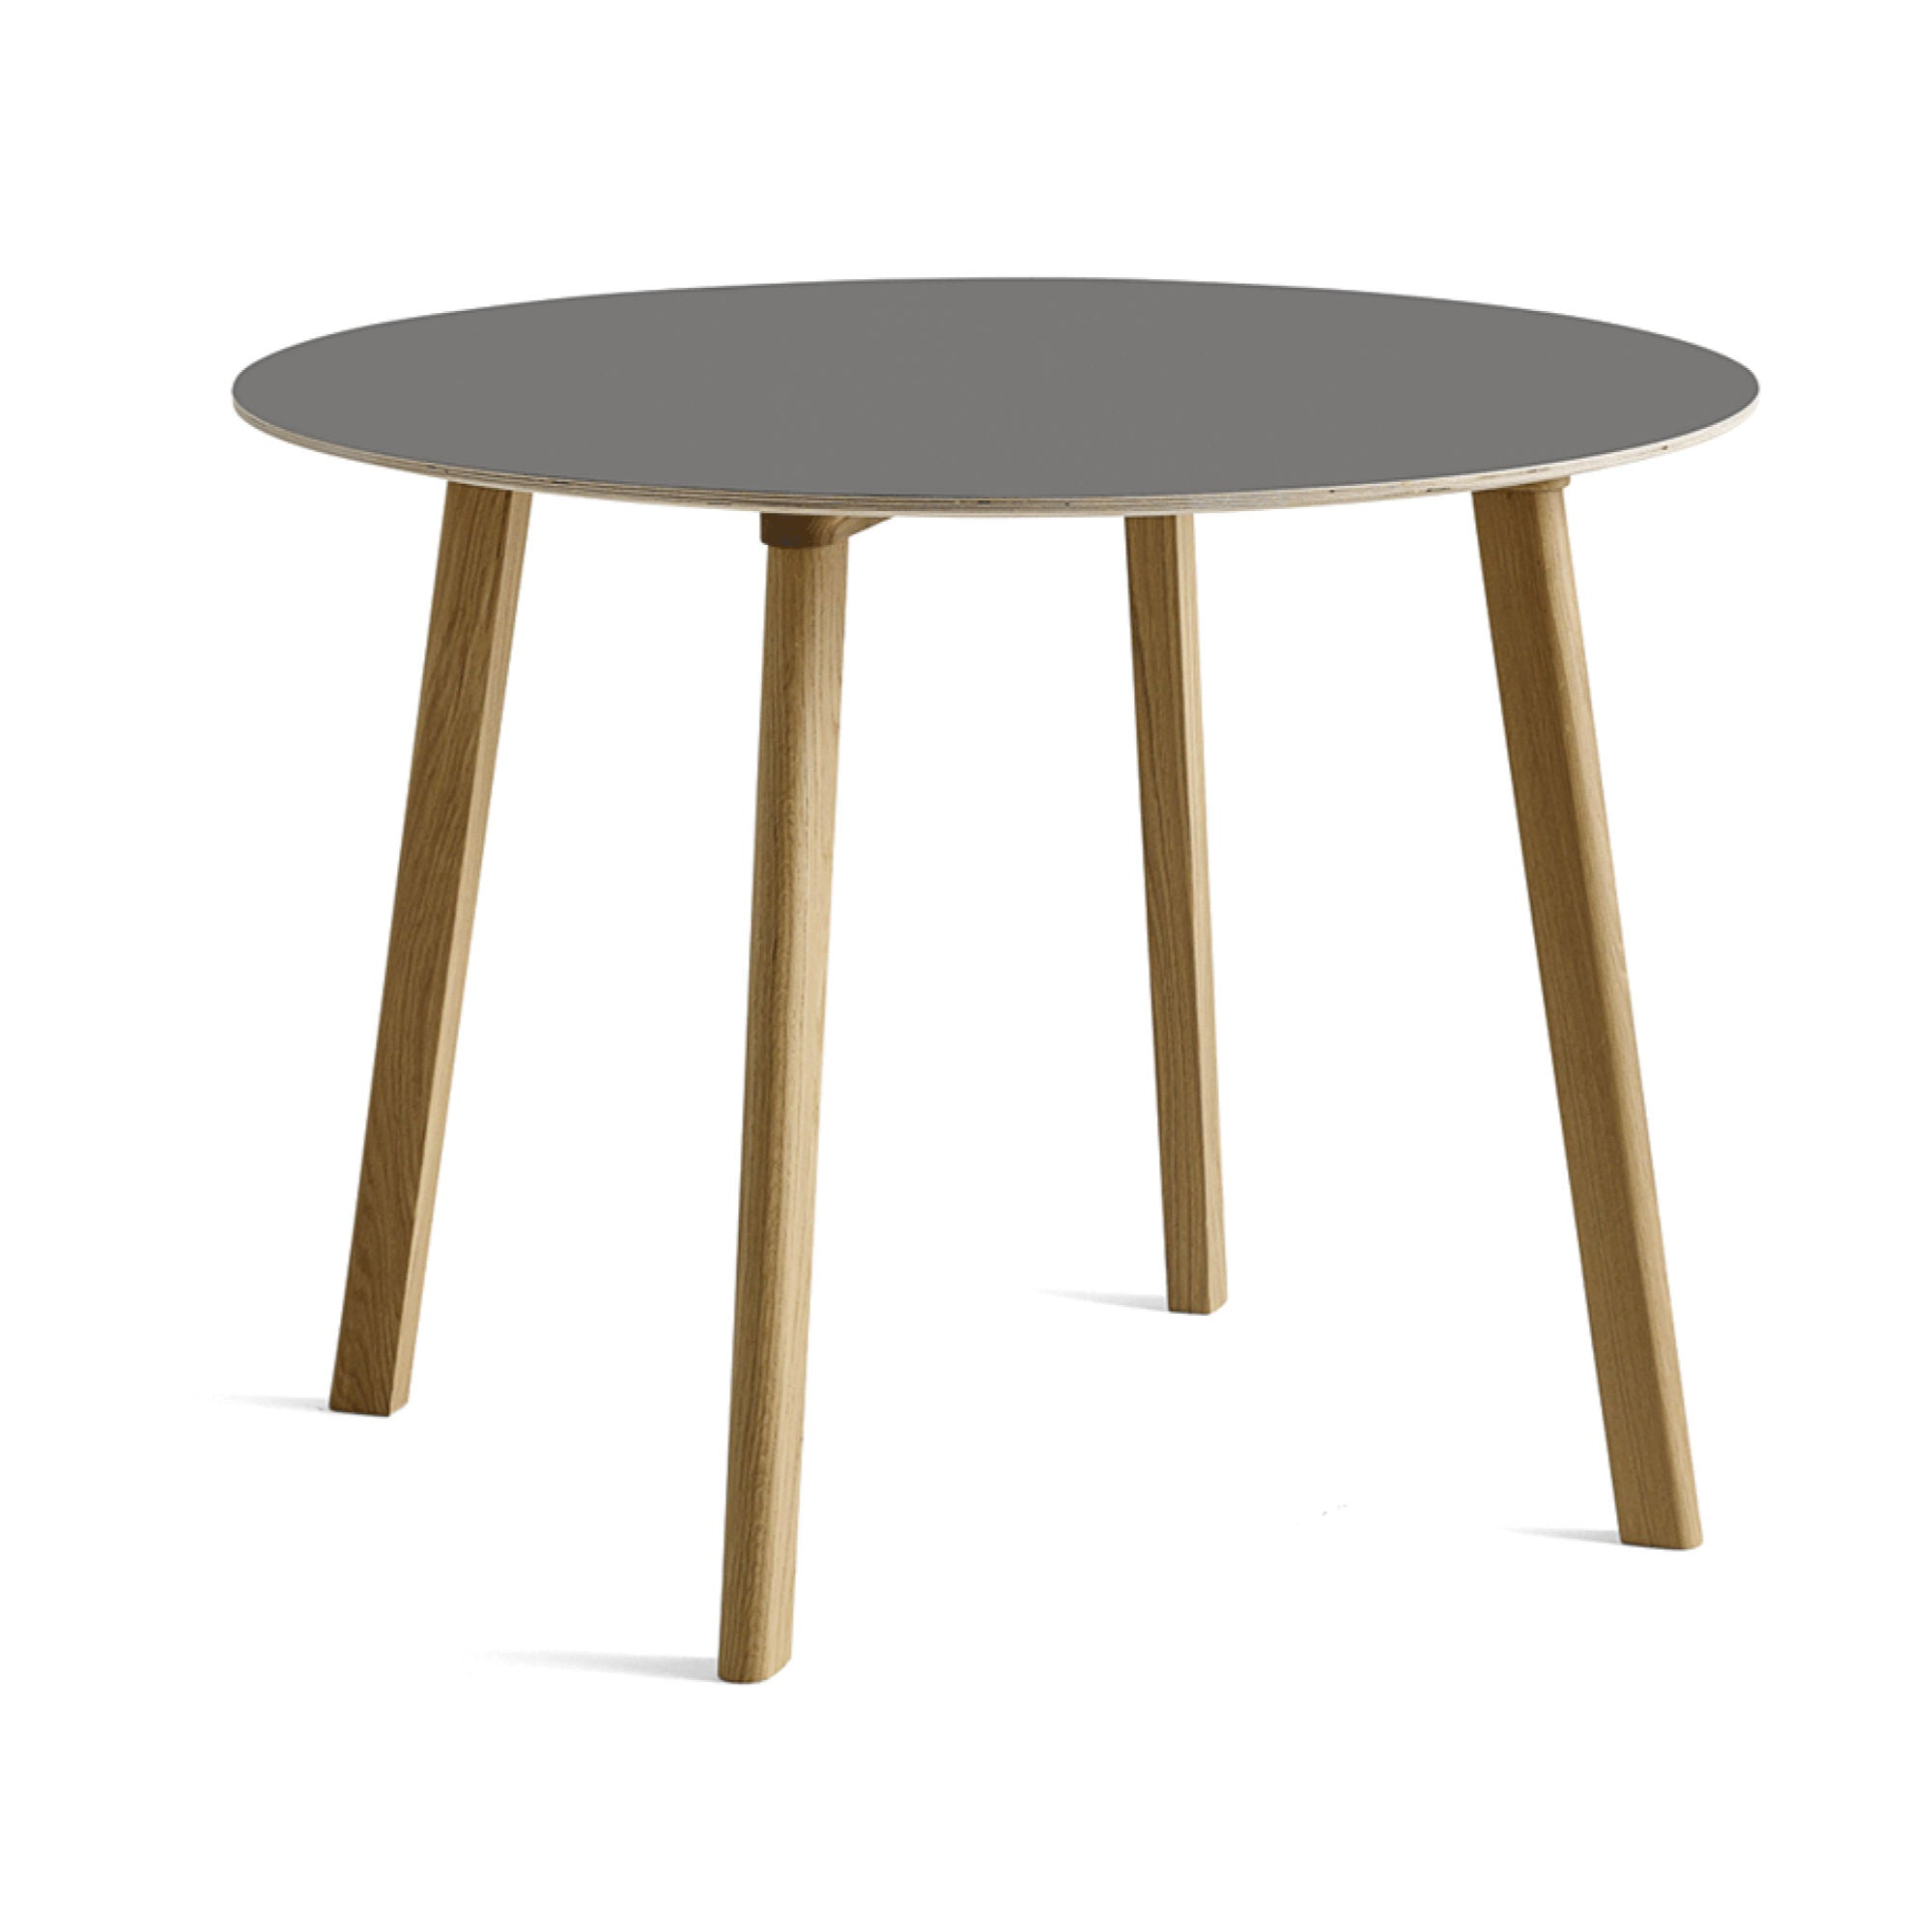 HAY CPH Deux 220 Round Table Dia98cm , Beige Grey Laminate-Matt Lacquered Solid Oak